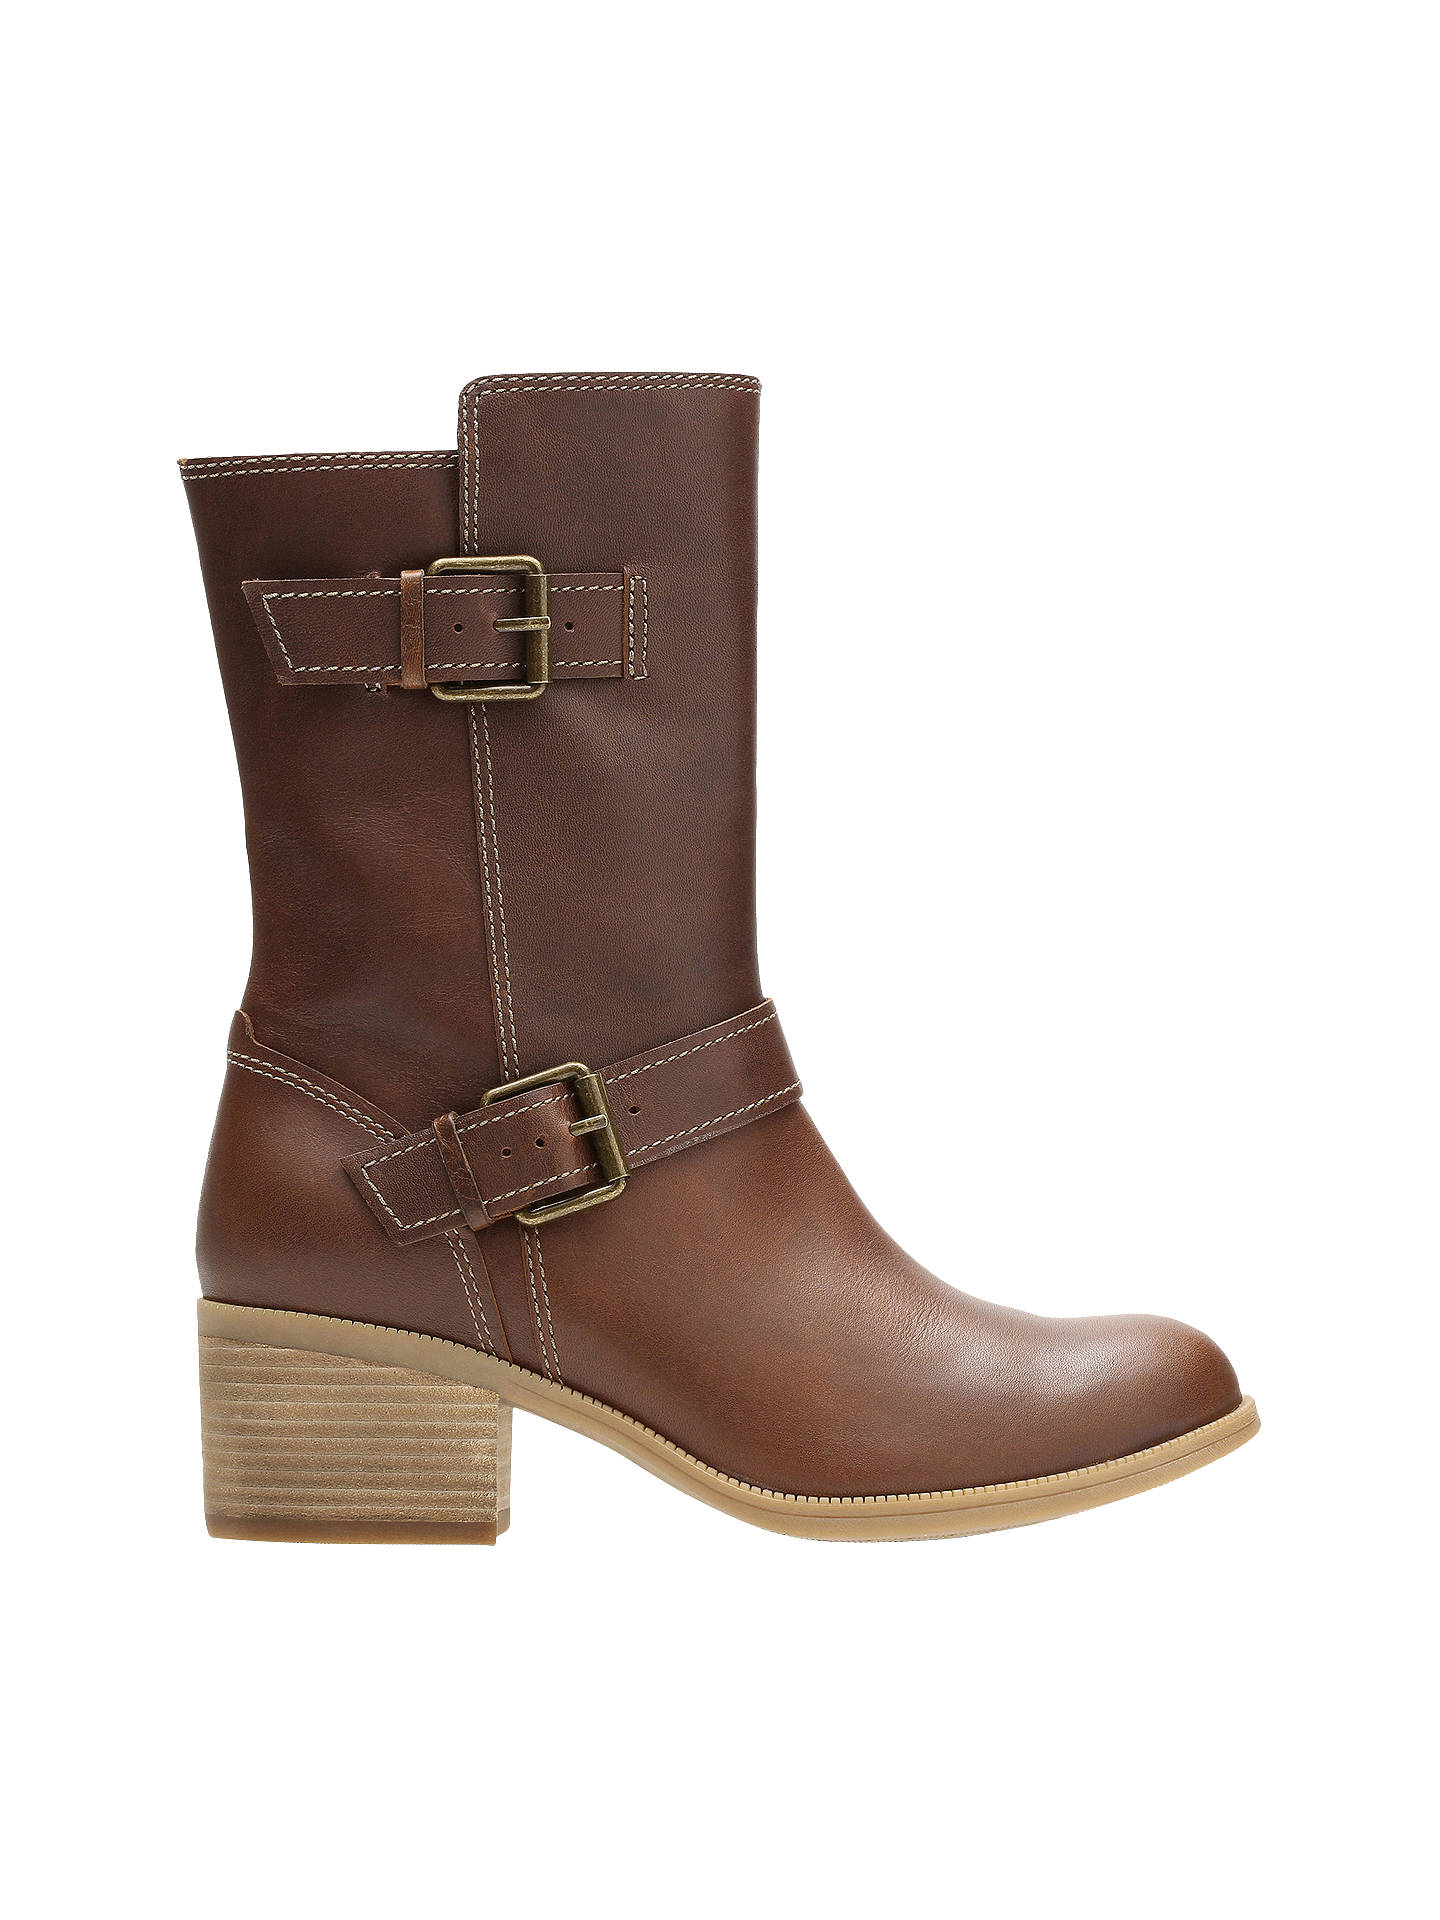 5d28fae8be5a Buy Clarks Maypearl Oasis Block Heeled Biker Calf Boots, Dark Tan, 4 Online  at ...